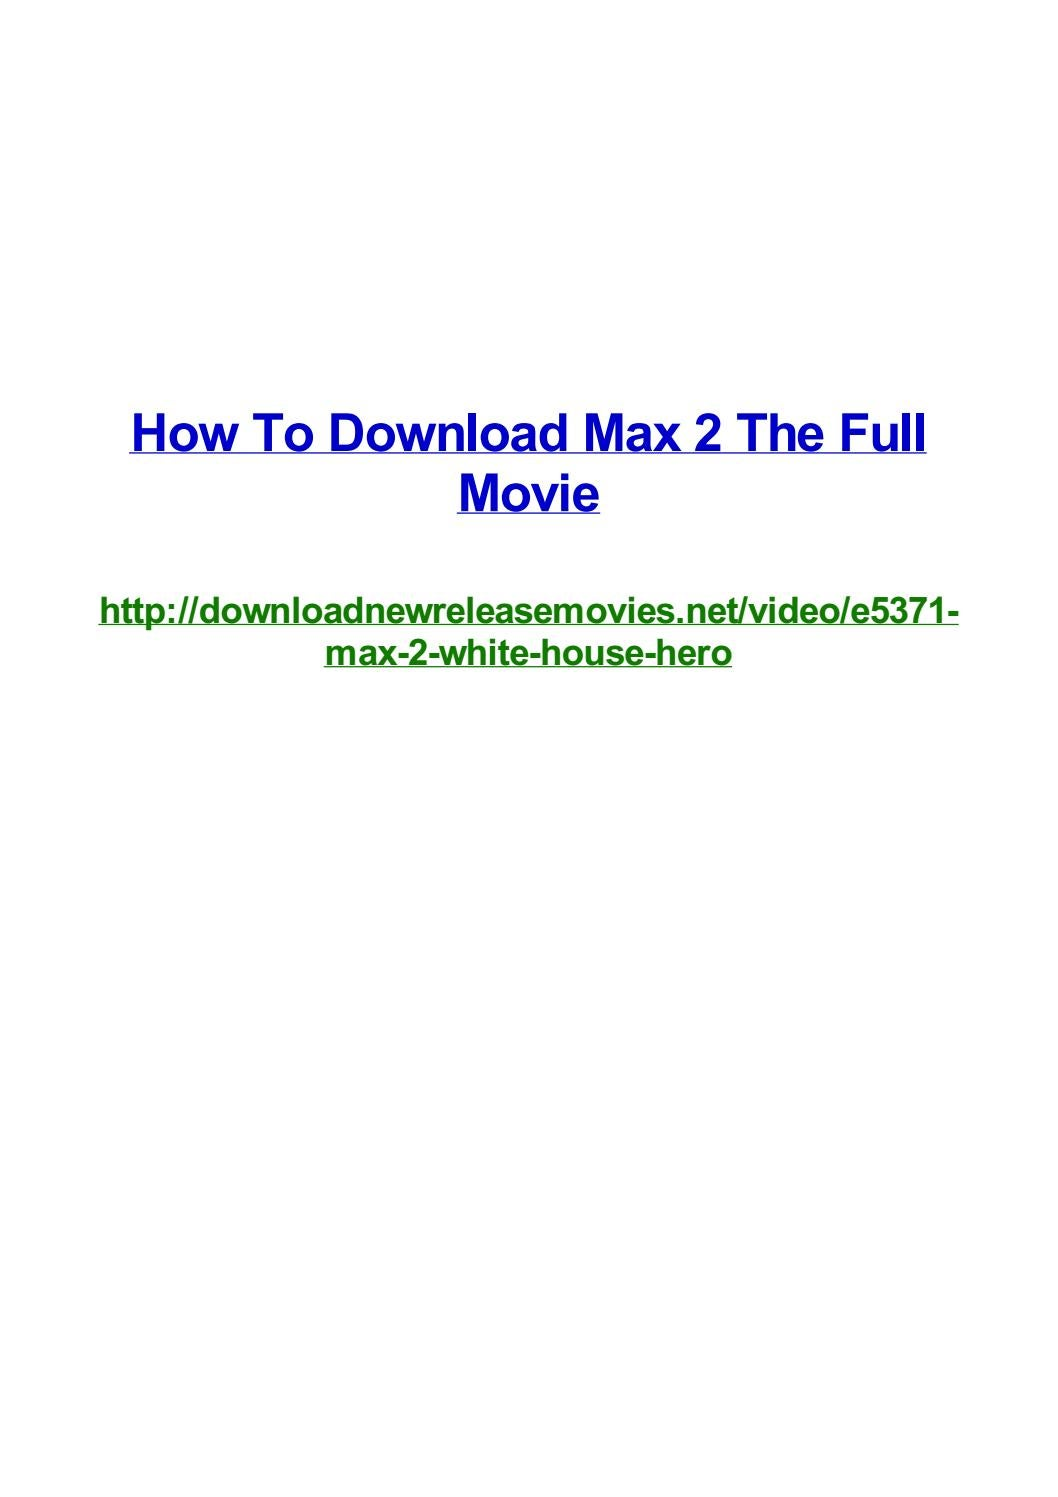 How To Download Max 2 The Full Movie By Frank Seamons Issuu